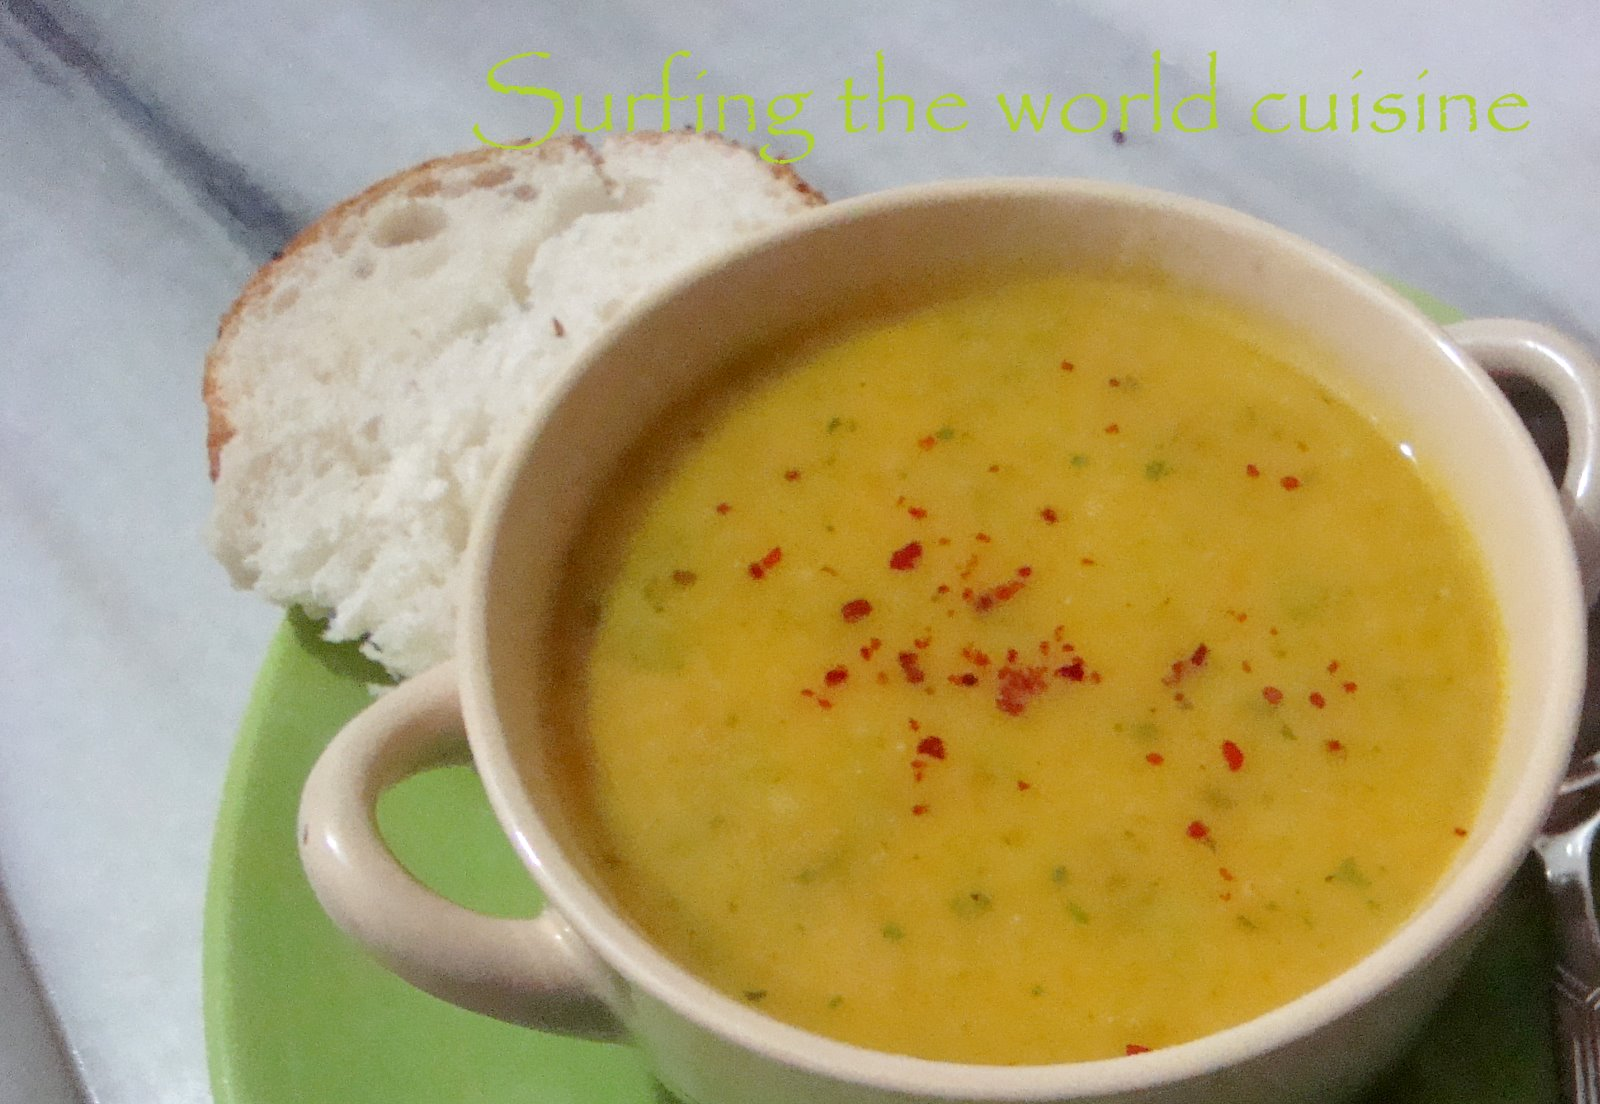 Surfing the world cuisine: Spicy carrot and cauliflower soup